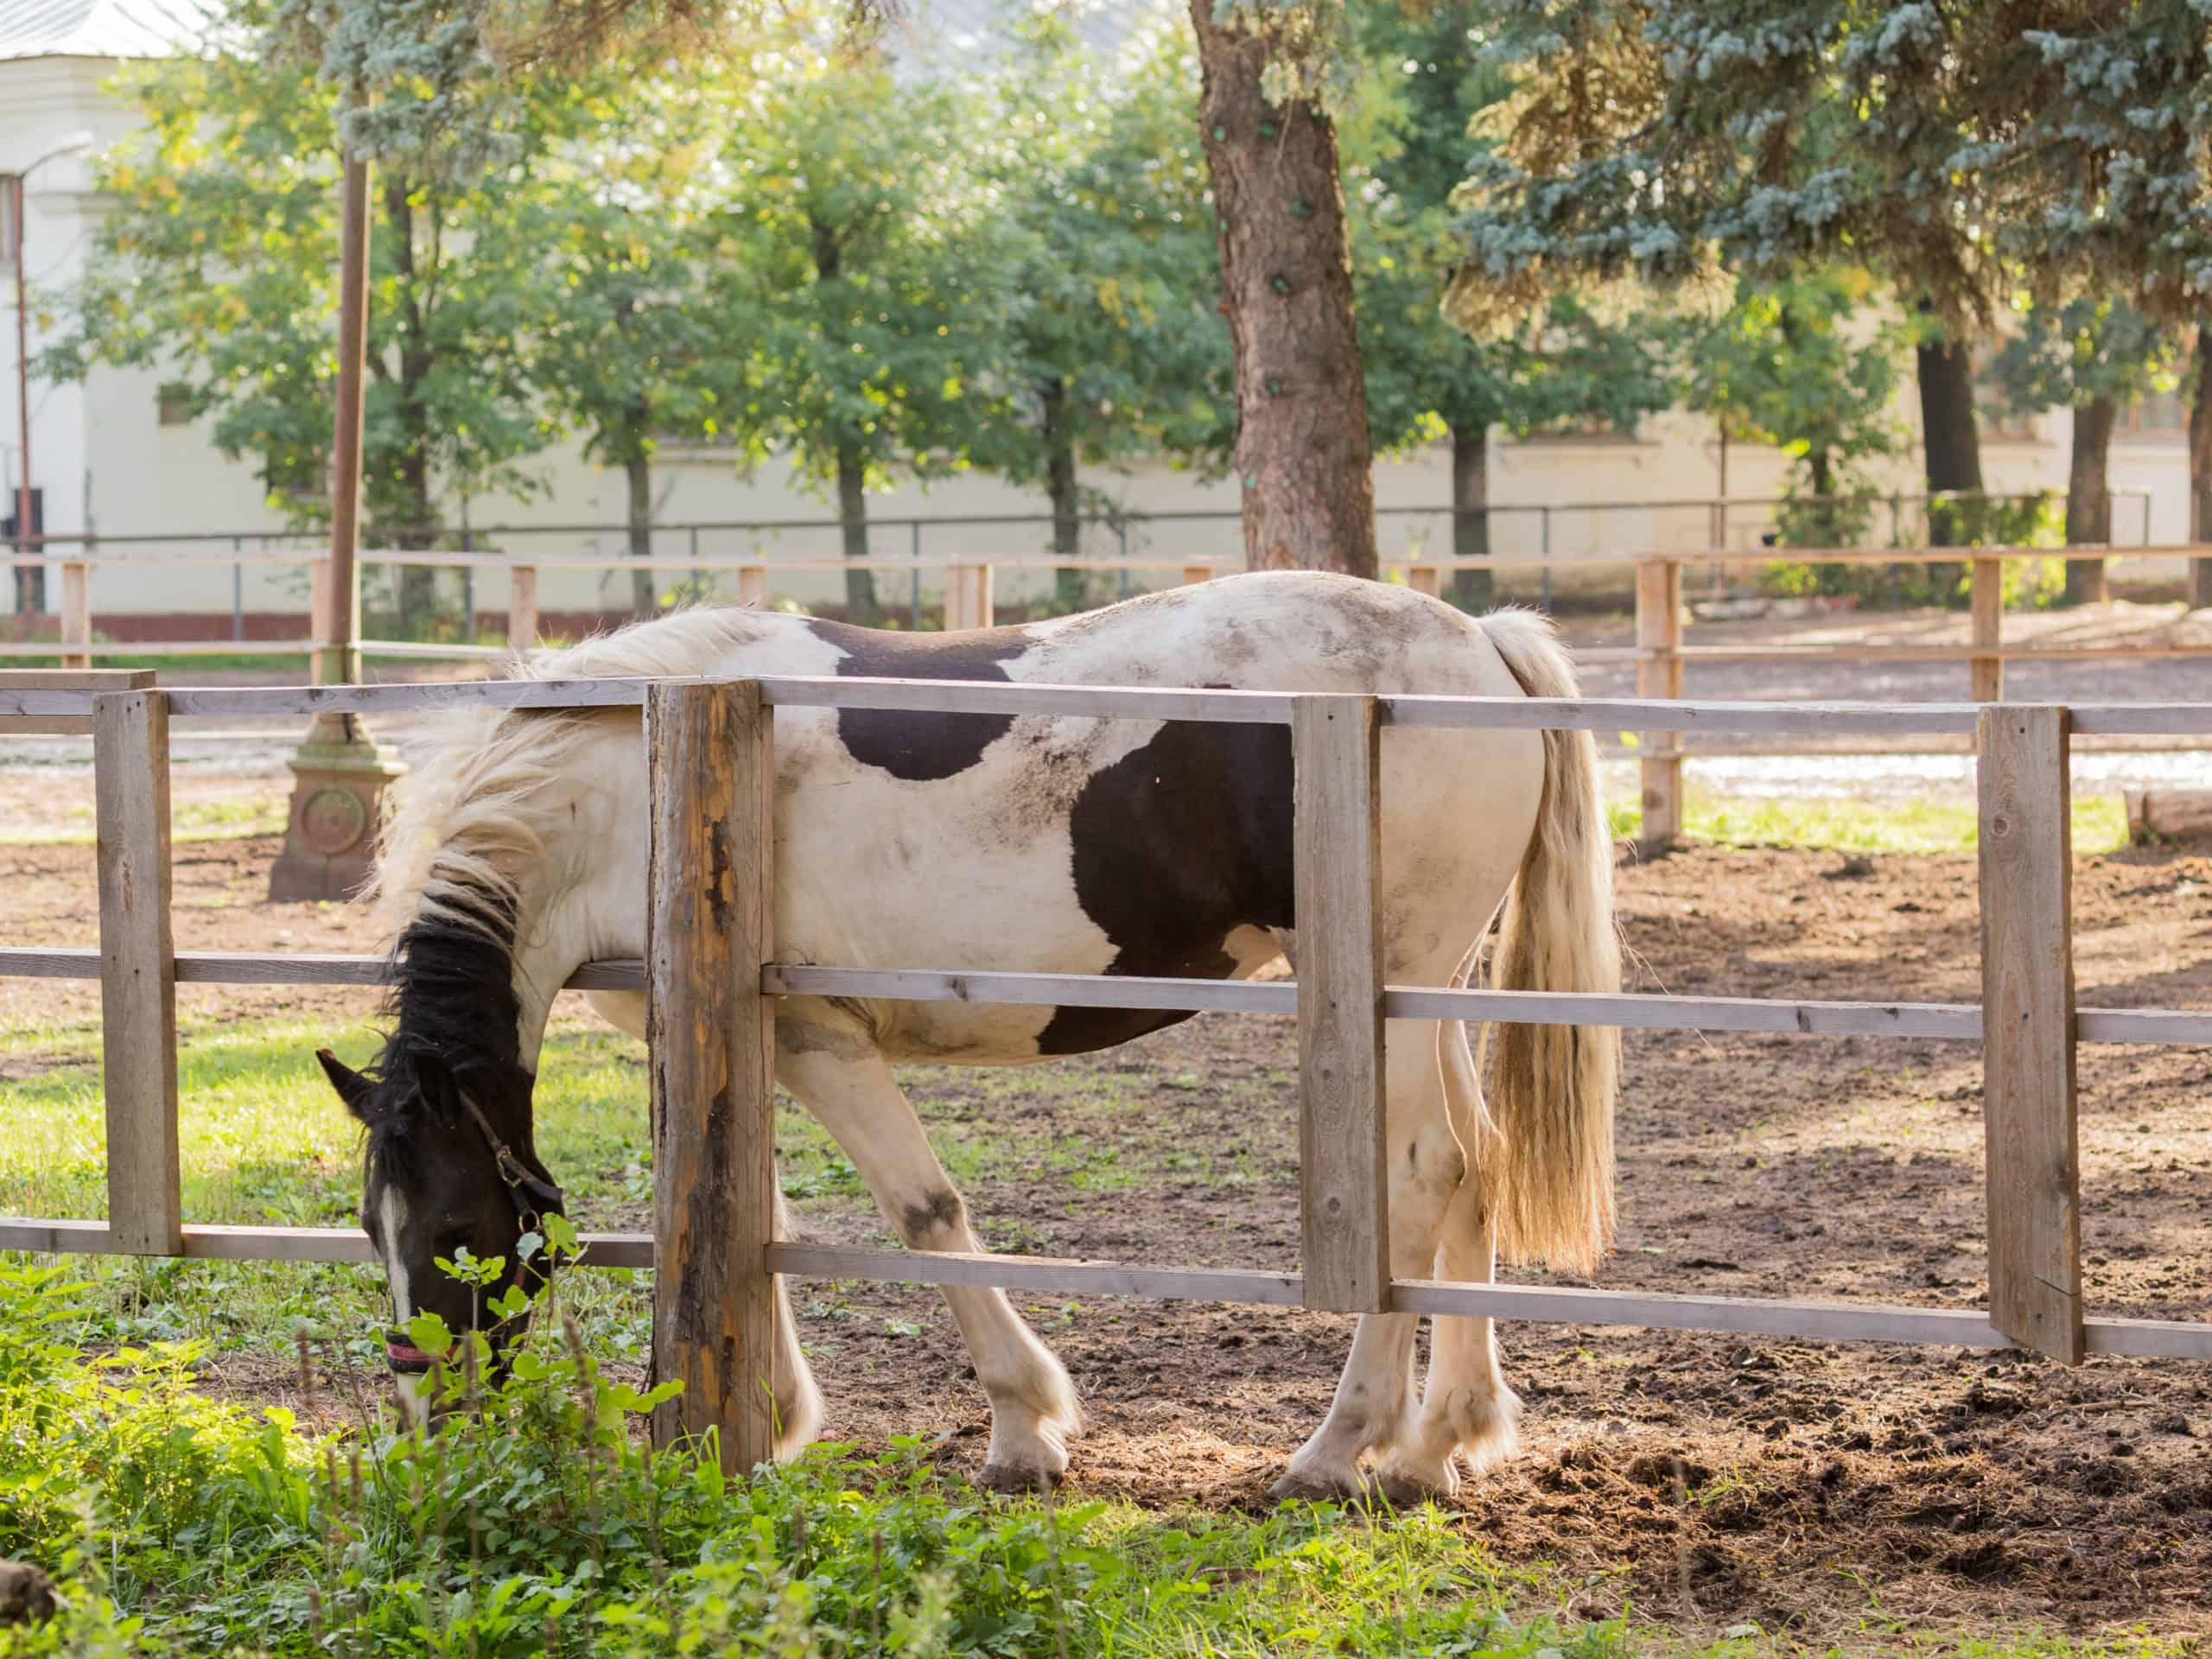 White horse with brown spots is eating green grass near a wooden fence and sunlight in the morning.